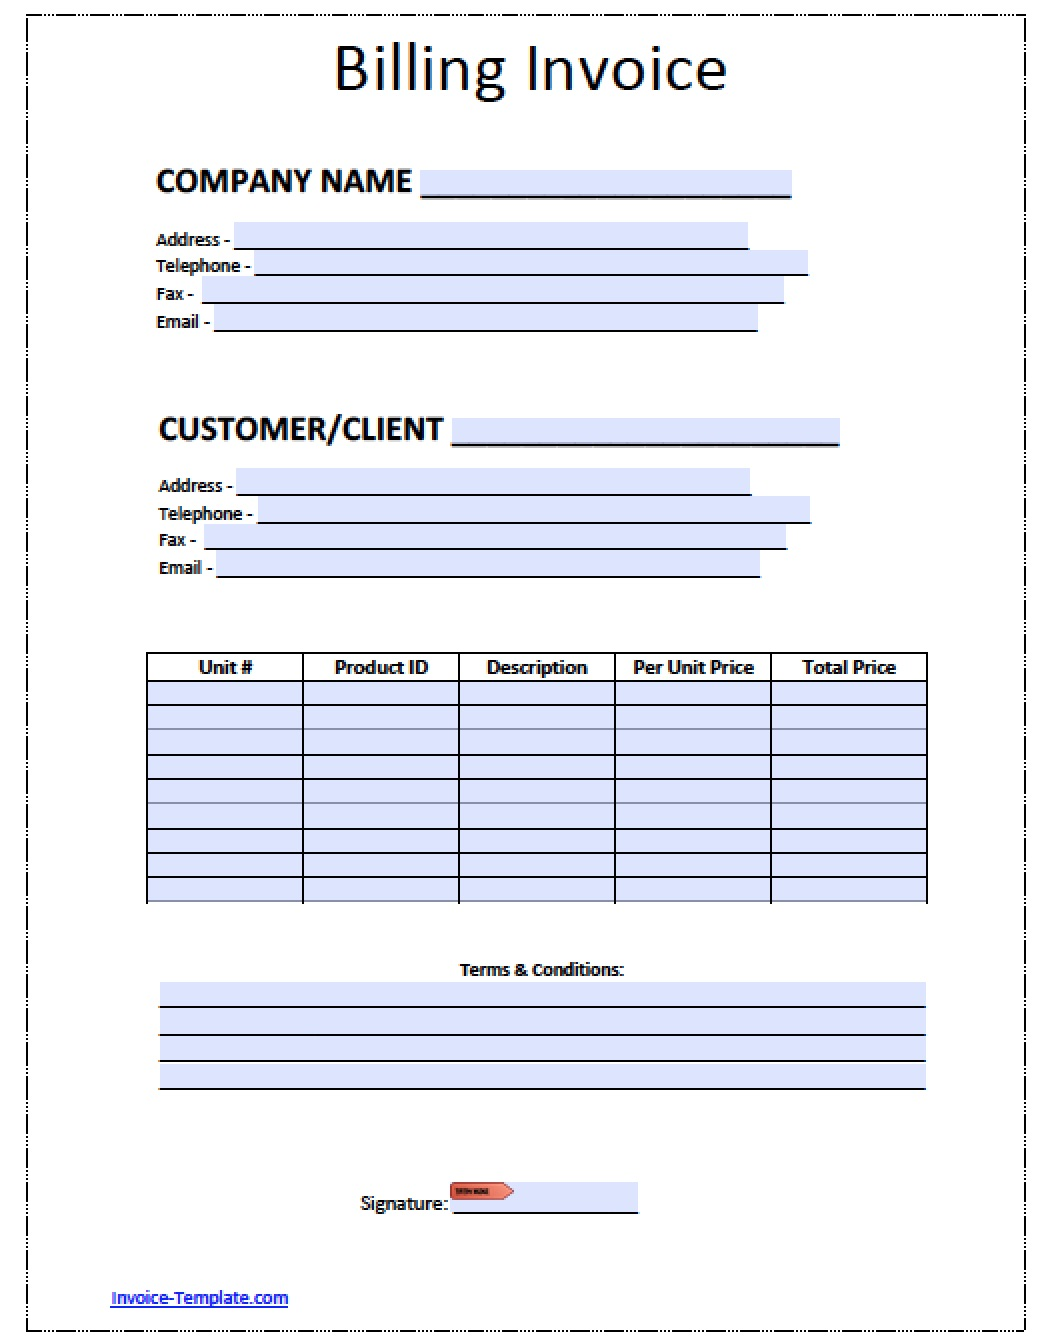 Free Billing Invoice Template Excel PDF Word Doc - Invoice for payment template